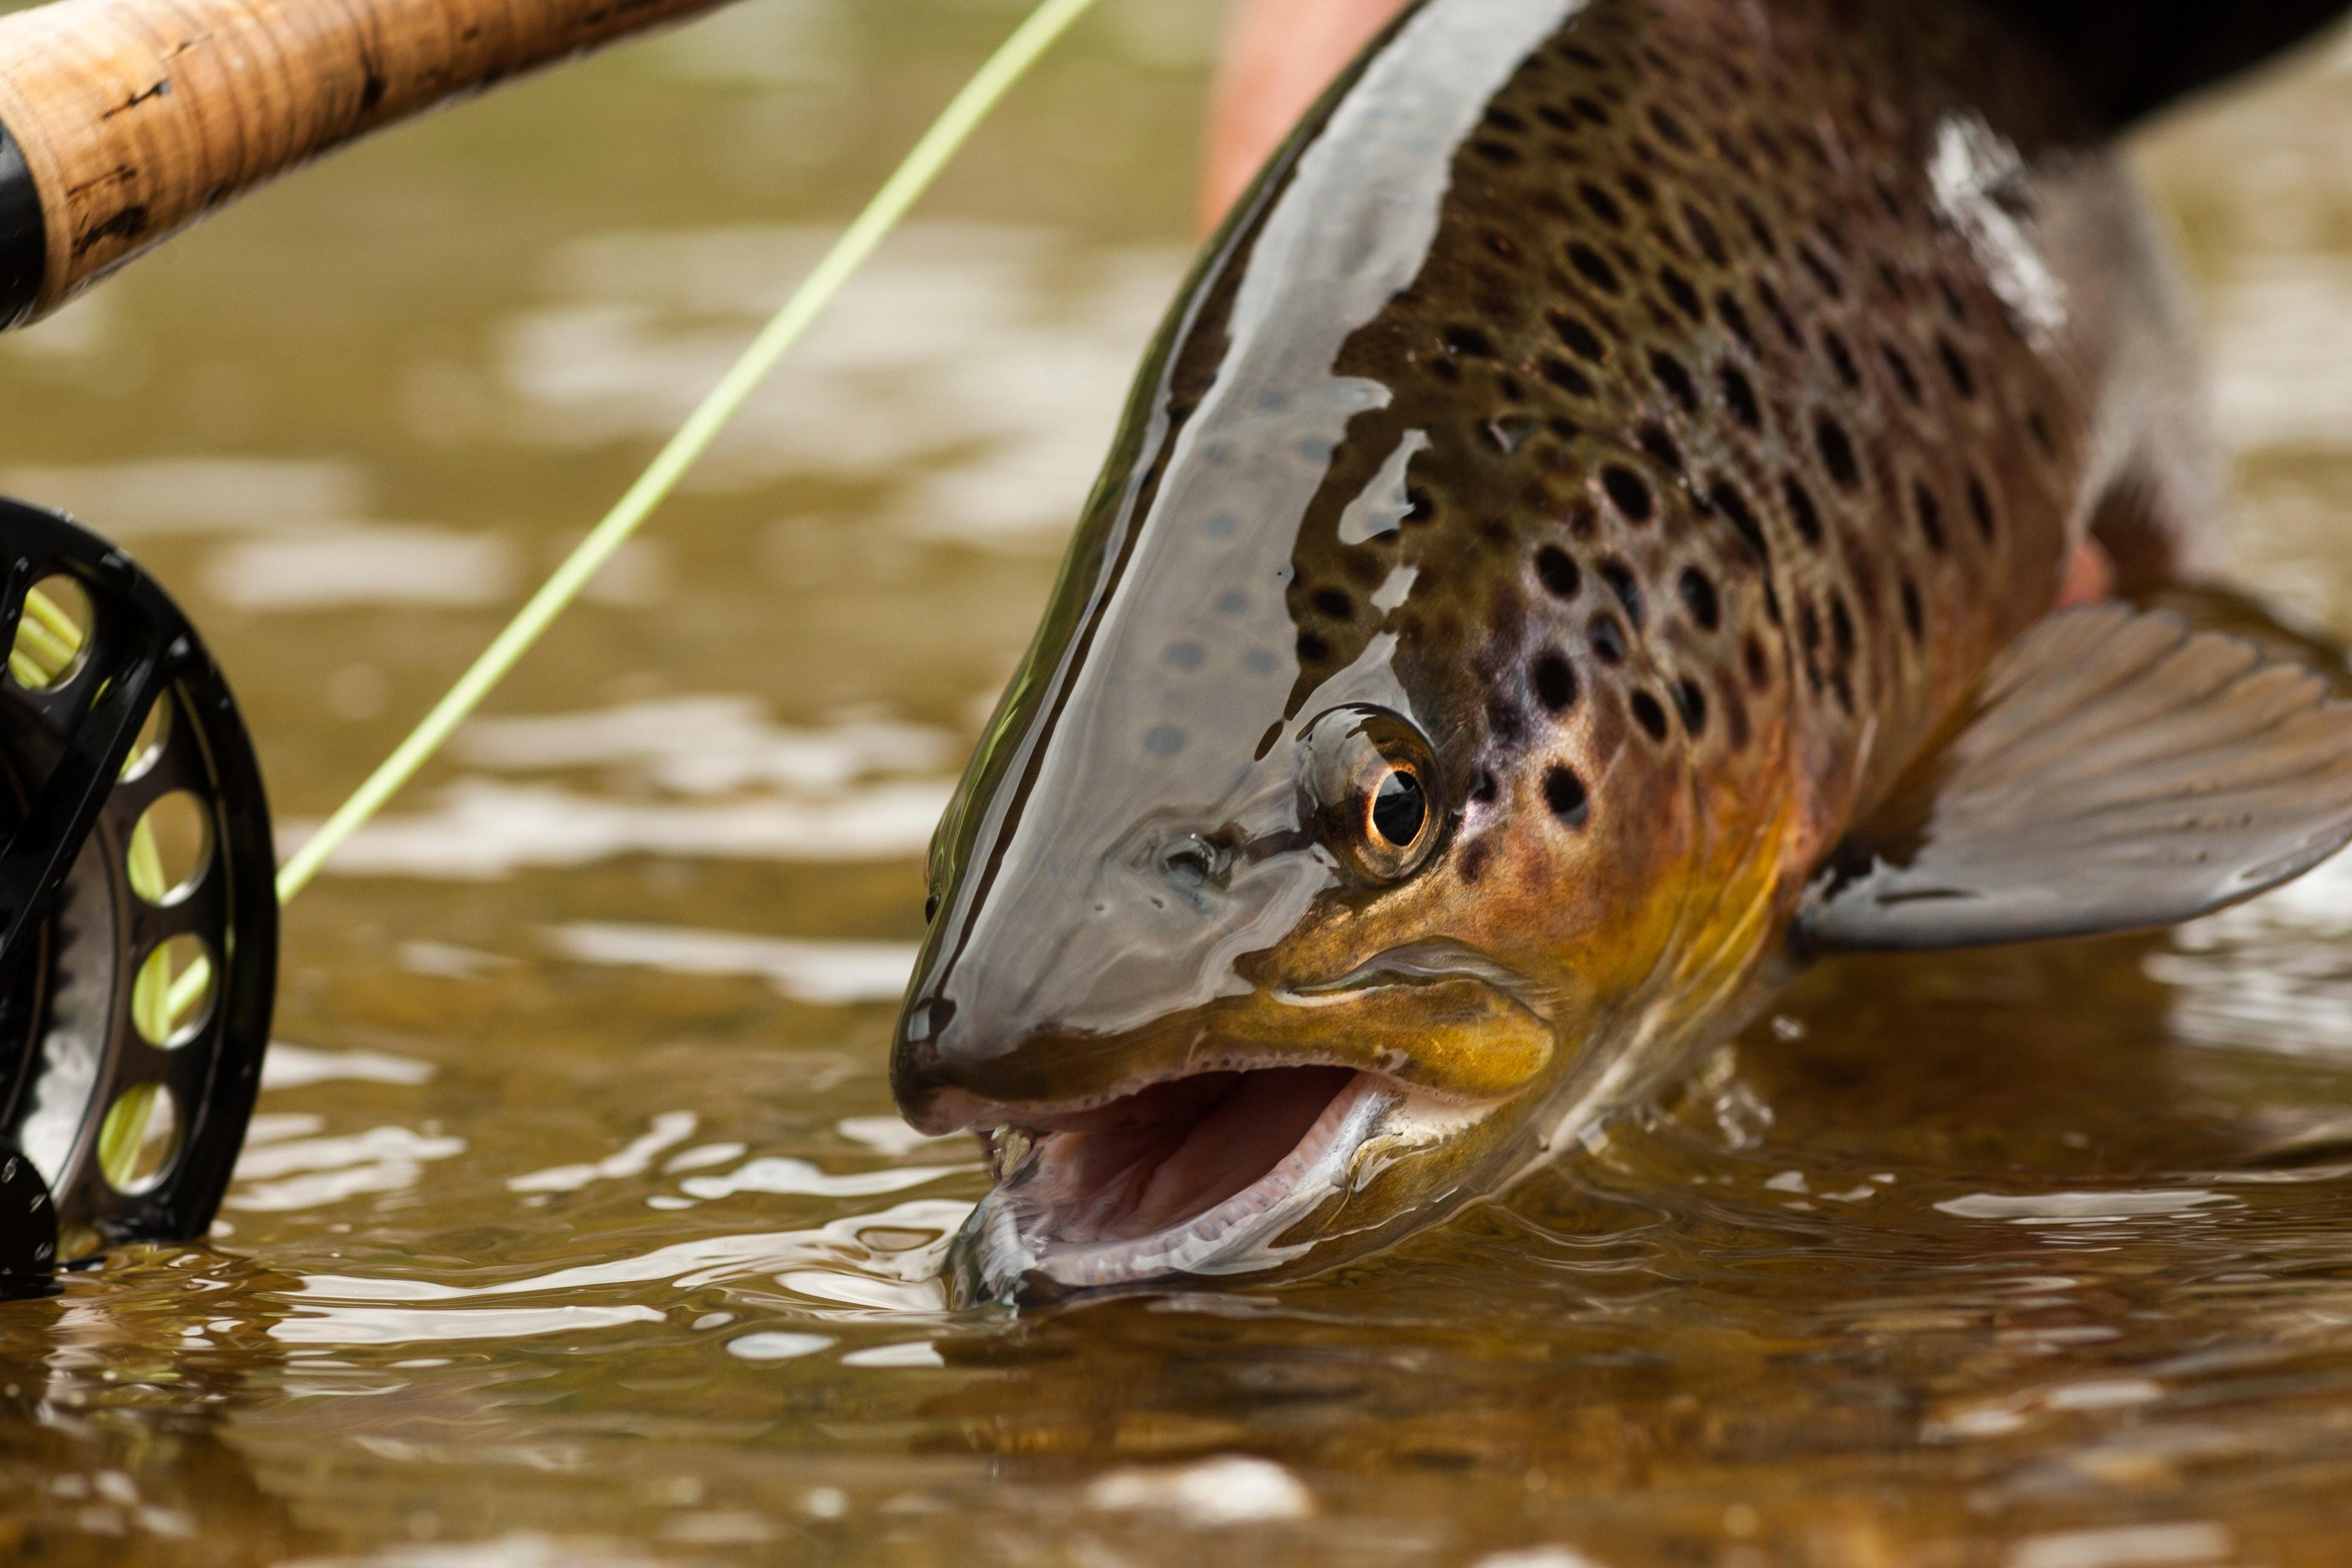 The National Park Service plans to cut invasive brown trout population